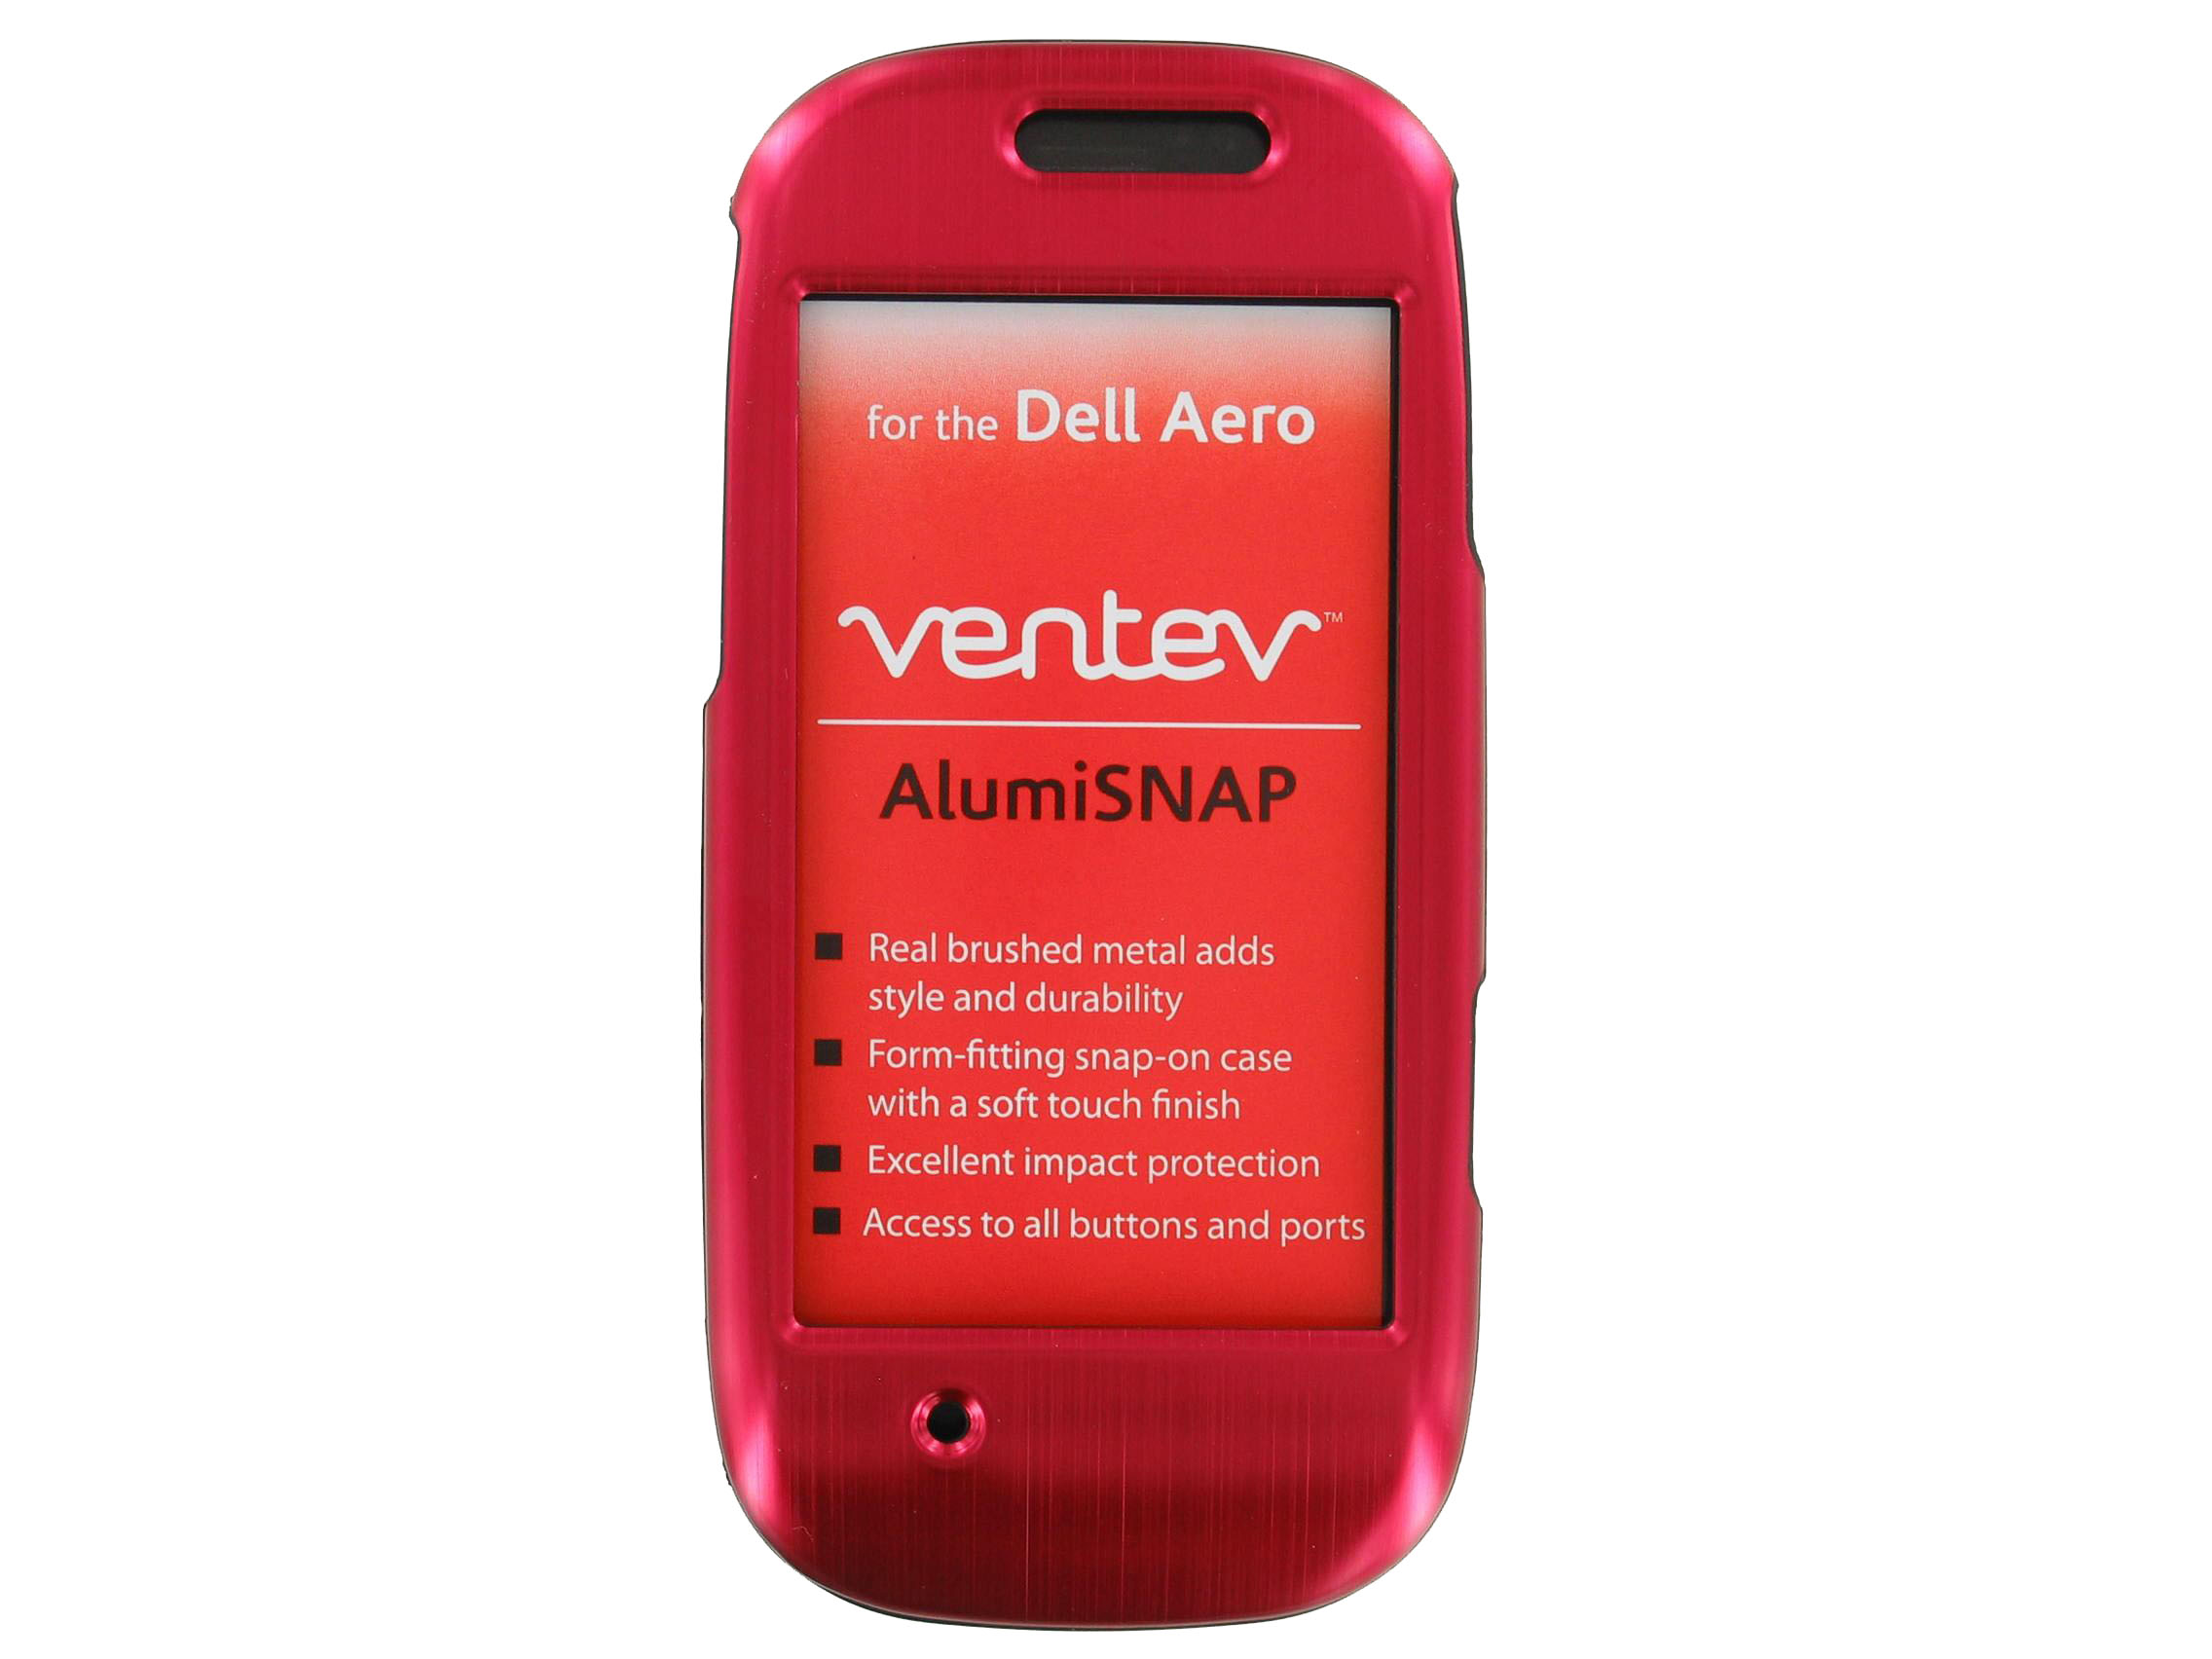 Ventev AlumiSNAP Case for Dell Aero (Red)